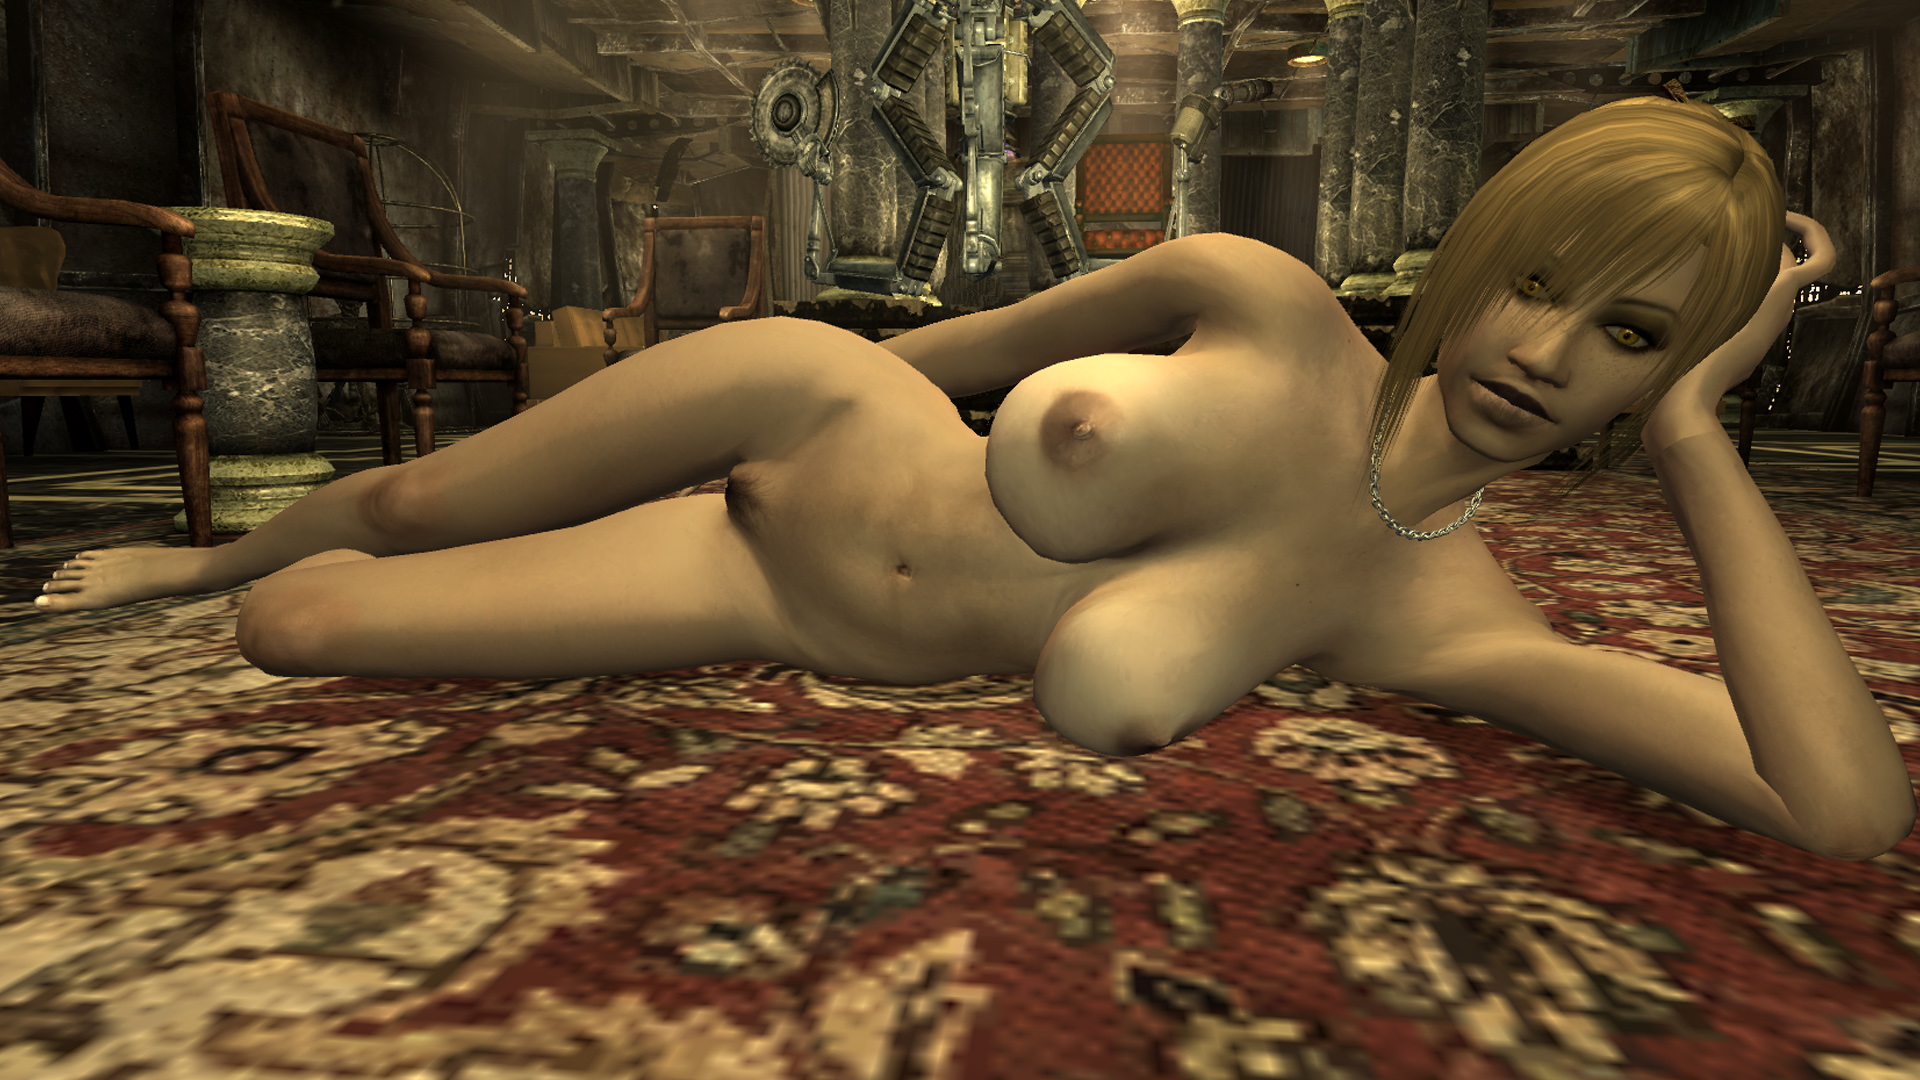 Nude skins fallout nsfw streaming